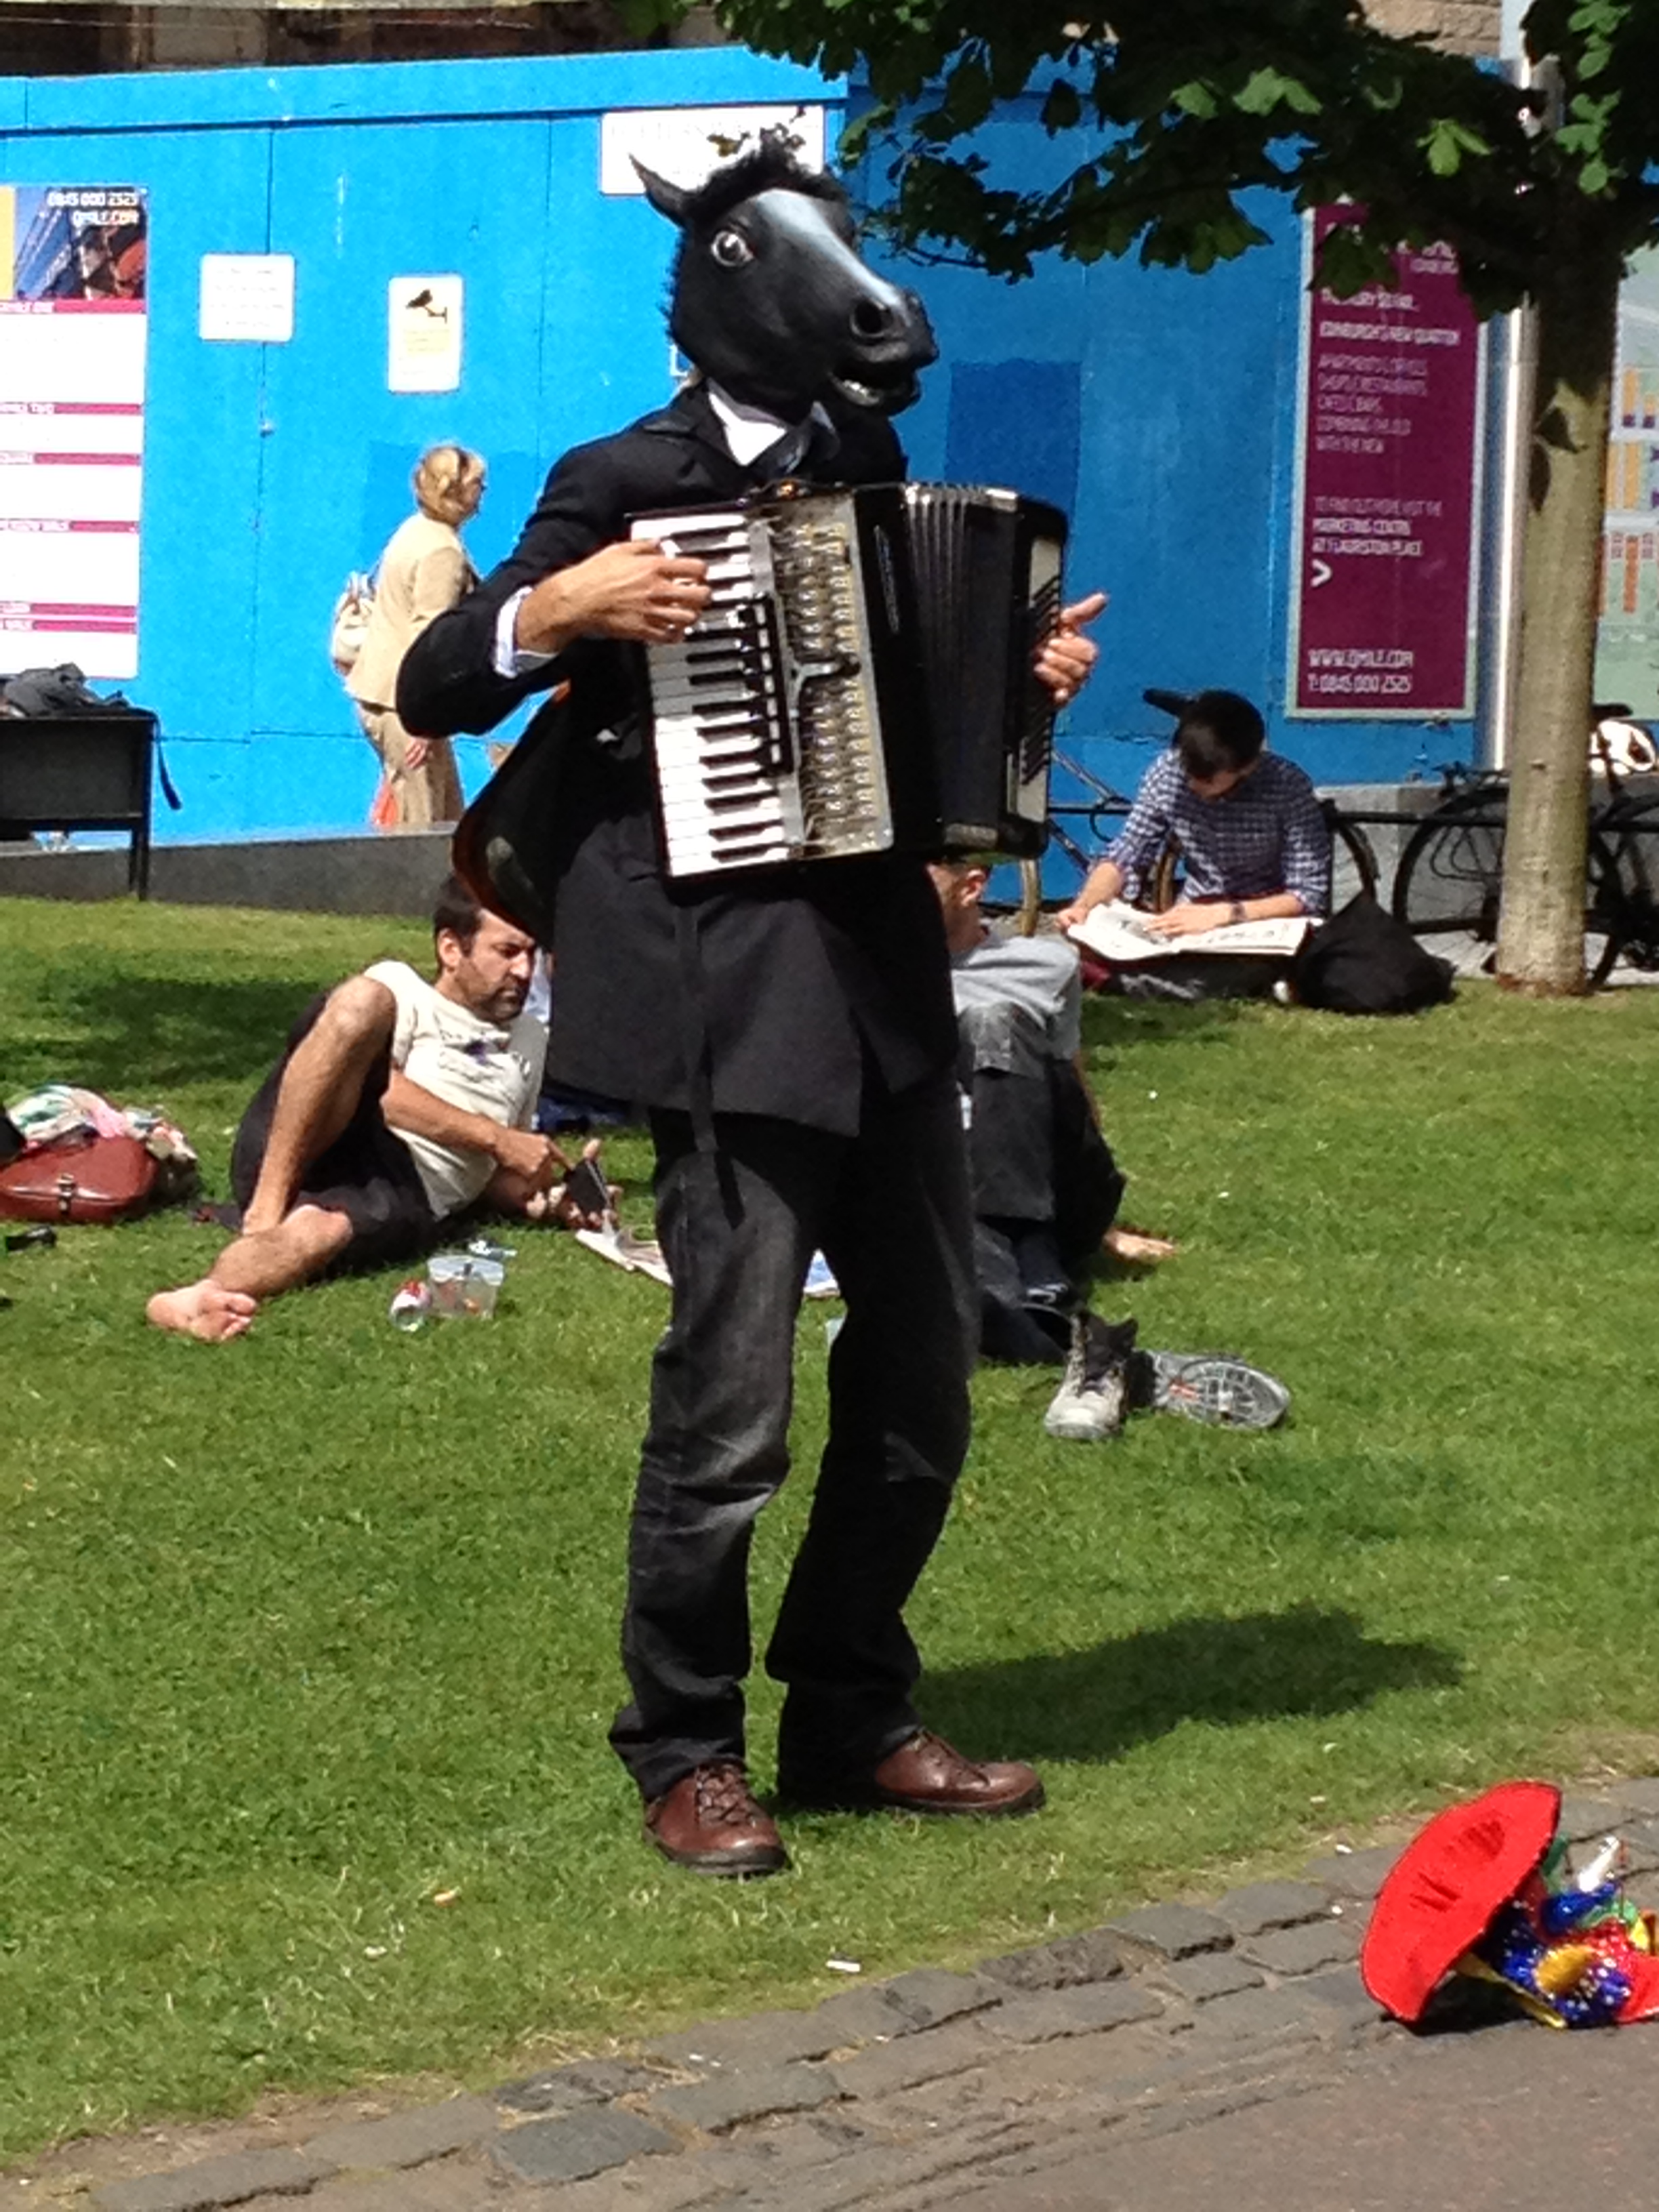 Horse playing the accordion - and why not?